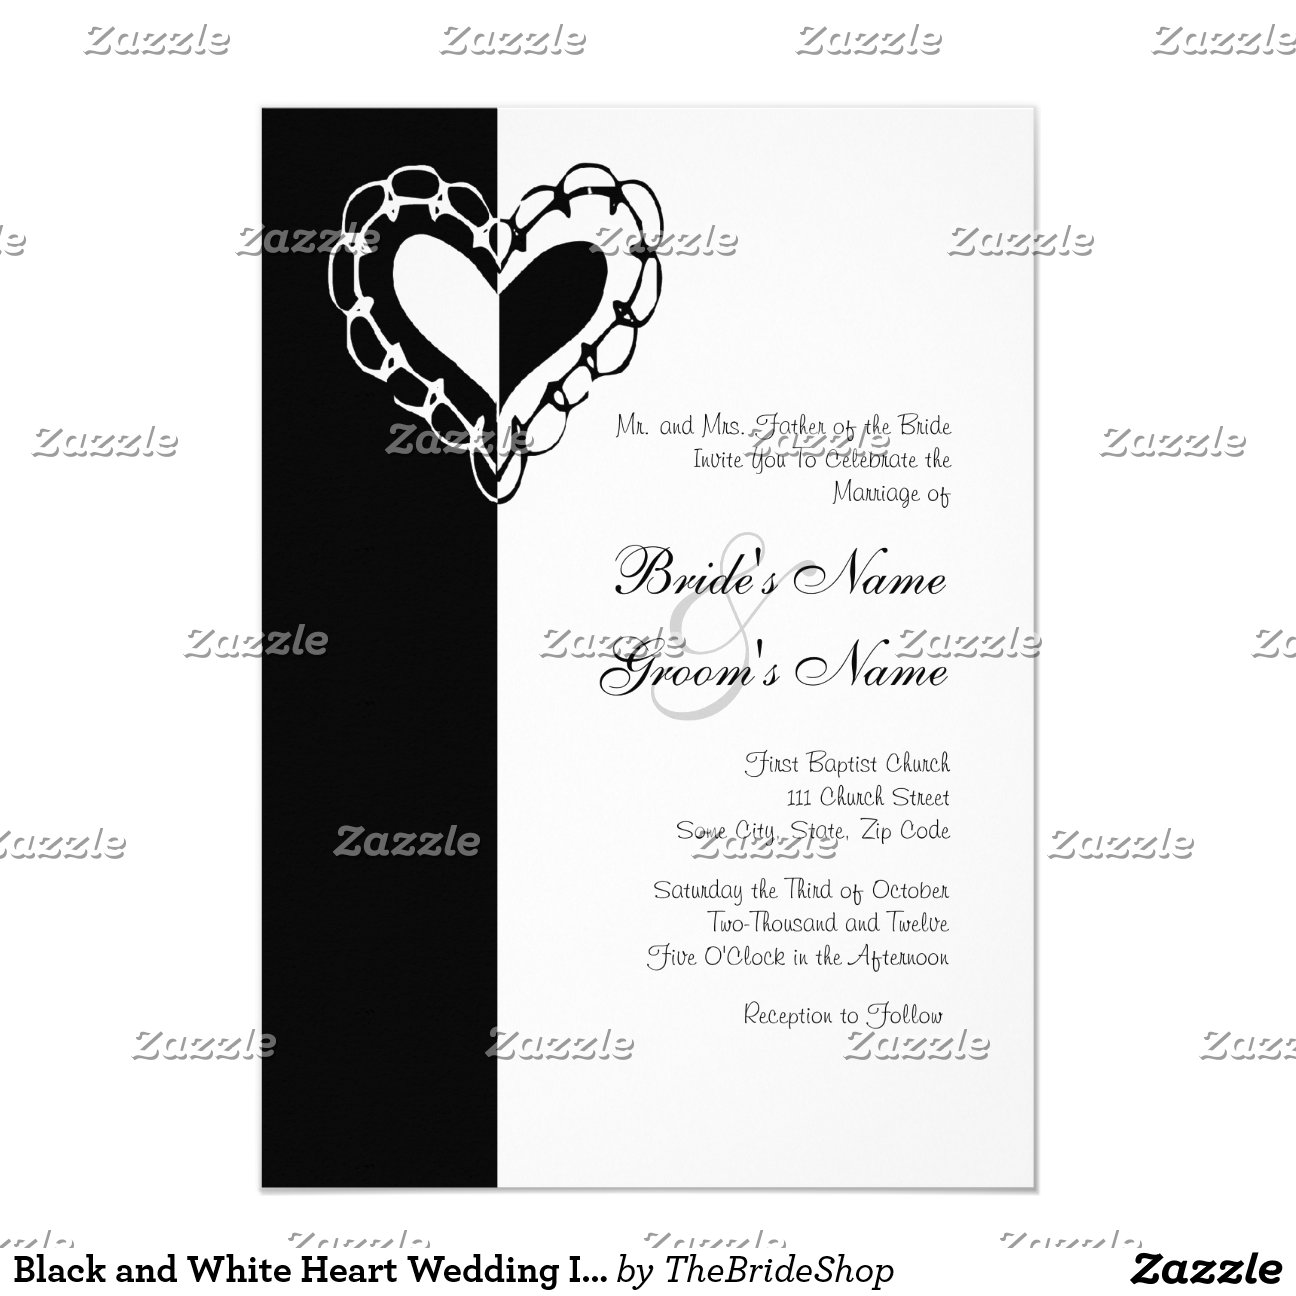 black and white wedding invitations black and white heart wedding invitation 1826